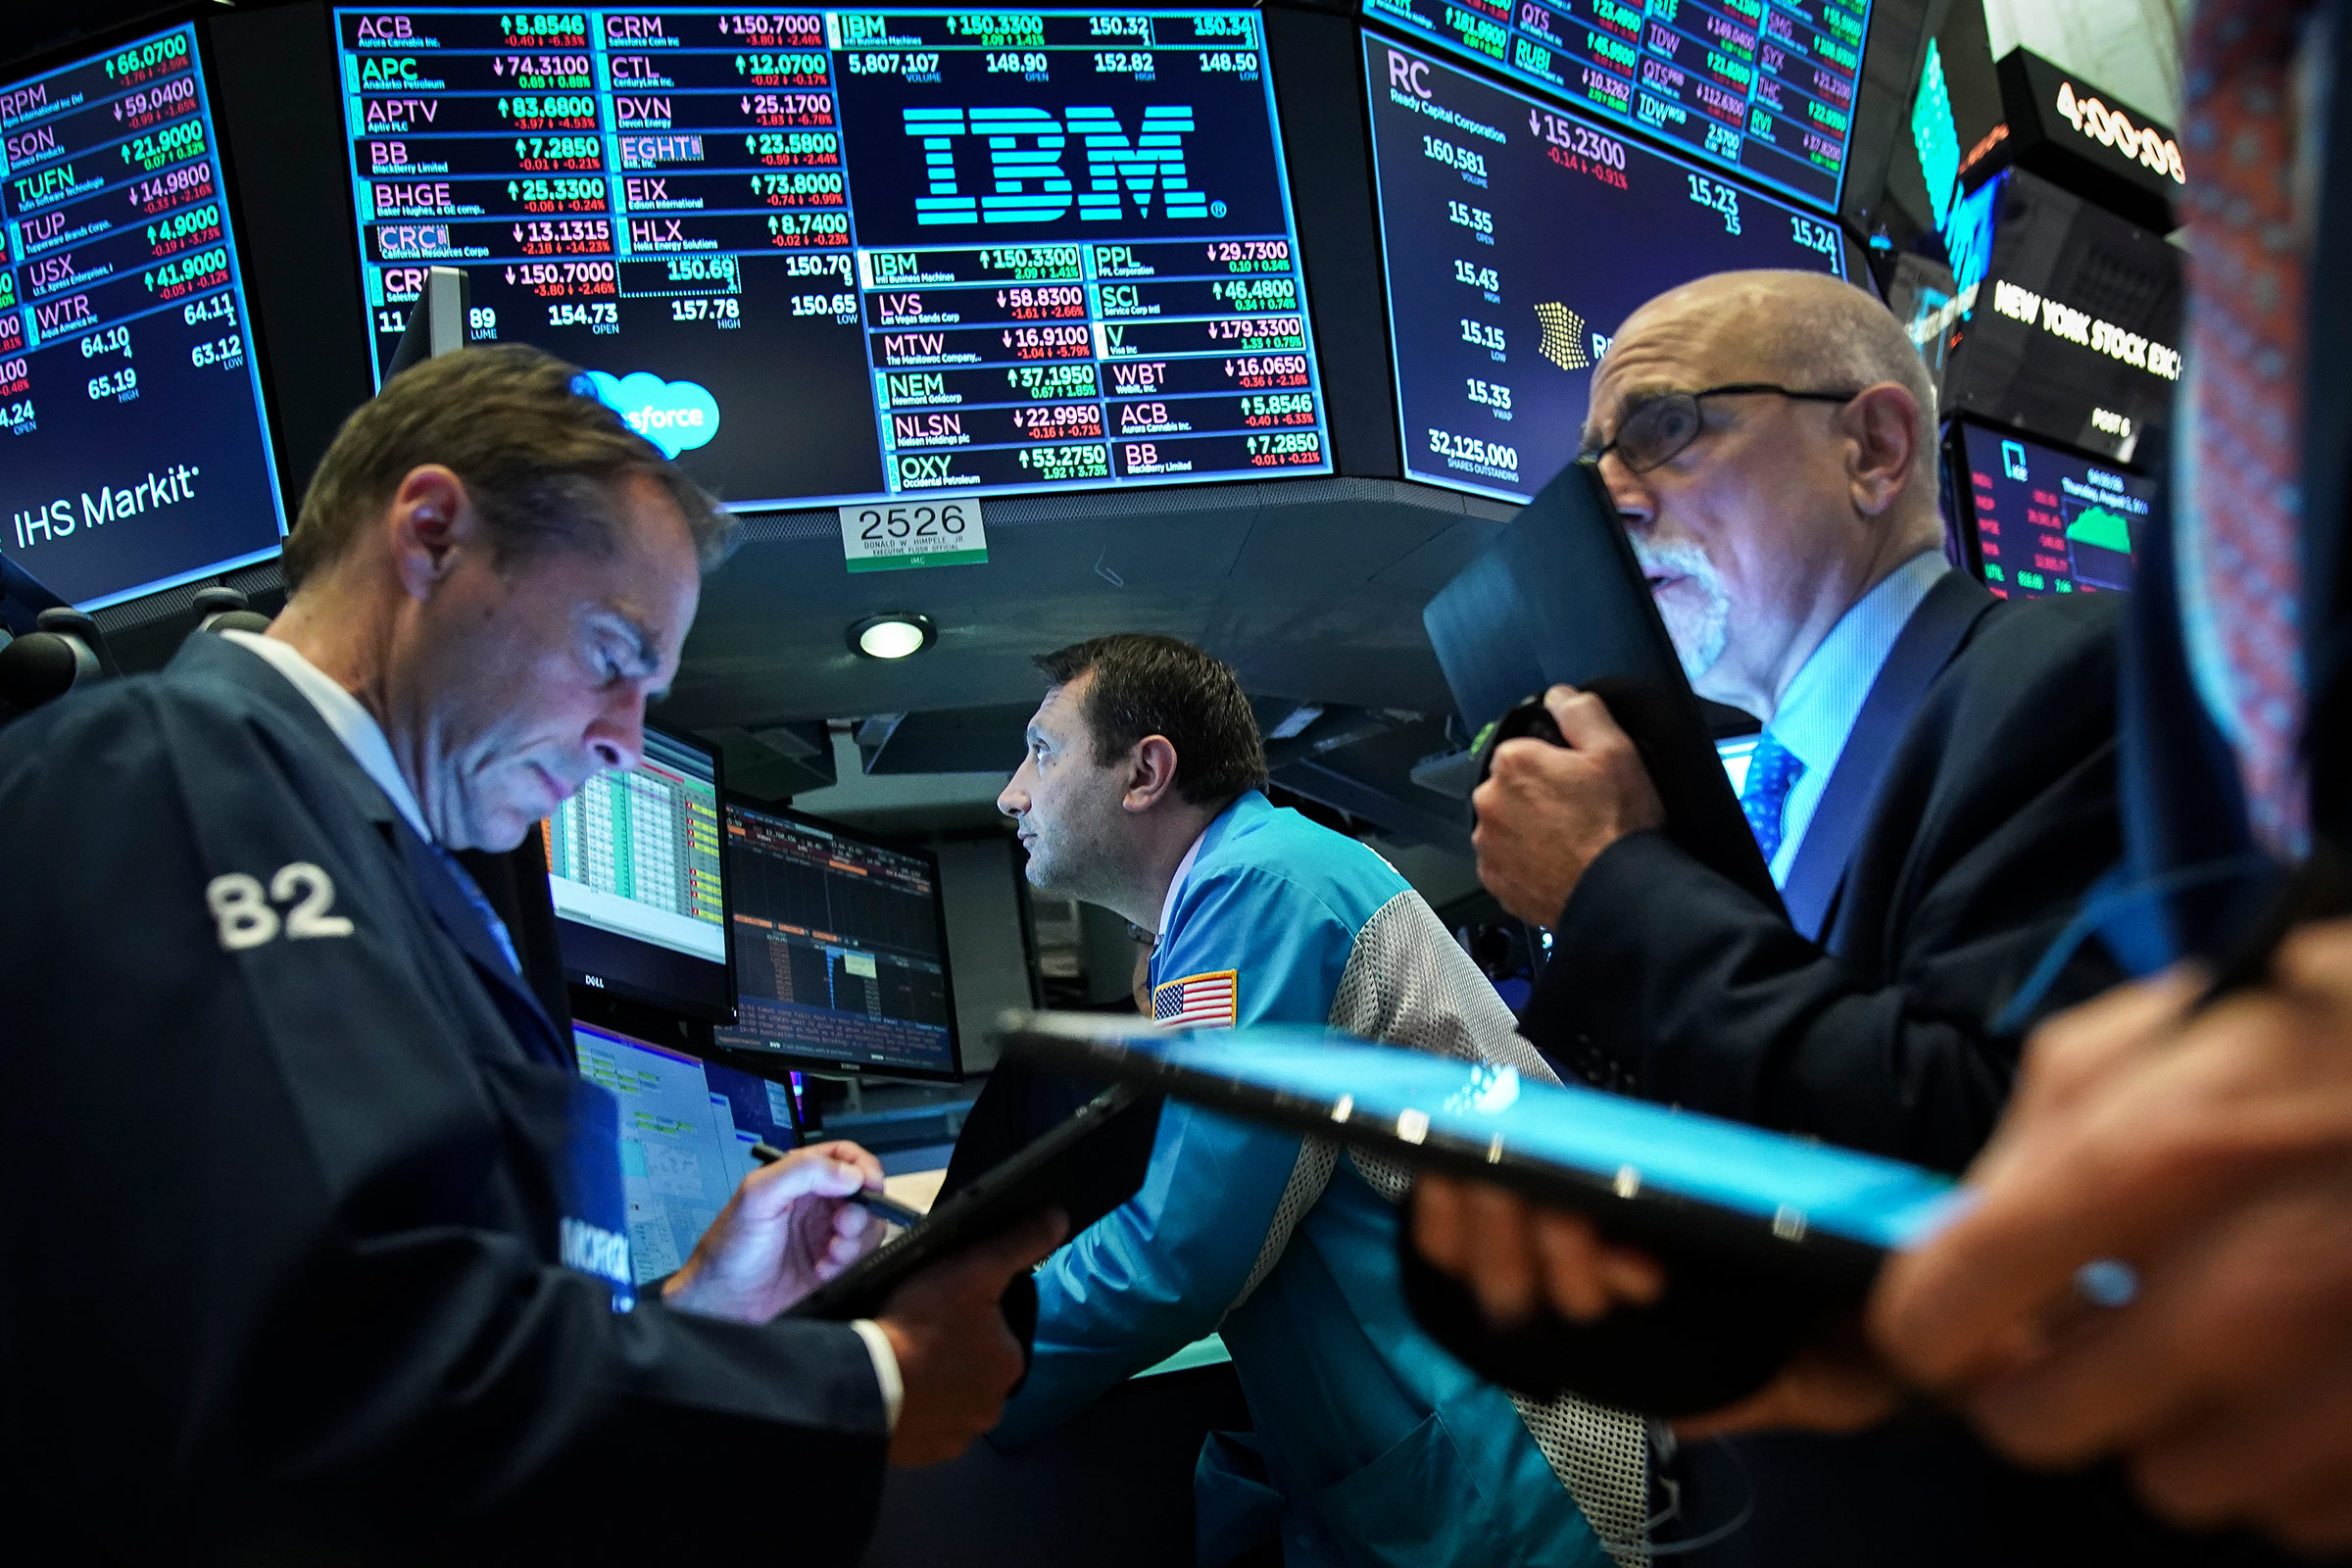 Traders and financial professionals work ahead of the closing bell on the floor of the New York Stock Exchange on Aug. 1, 2019 in New York City. Following large gains earlier in the day, U.S. markets dropped sharply after an afternoon tweet by U.S. President Donald Trump announcing his plans to impose a 10 percent tariff on an additional $300 billion worth of Chinese imports.